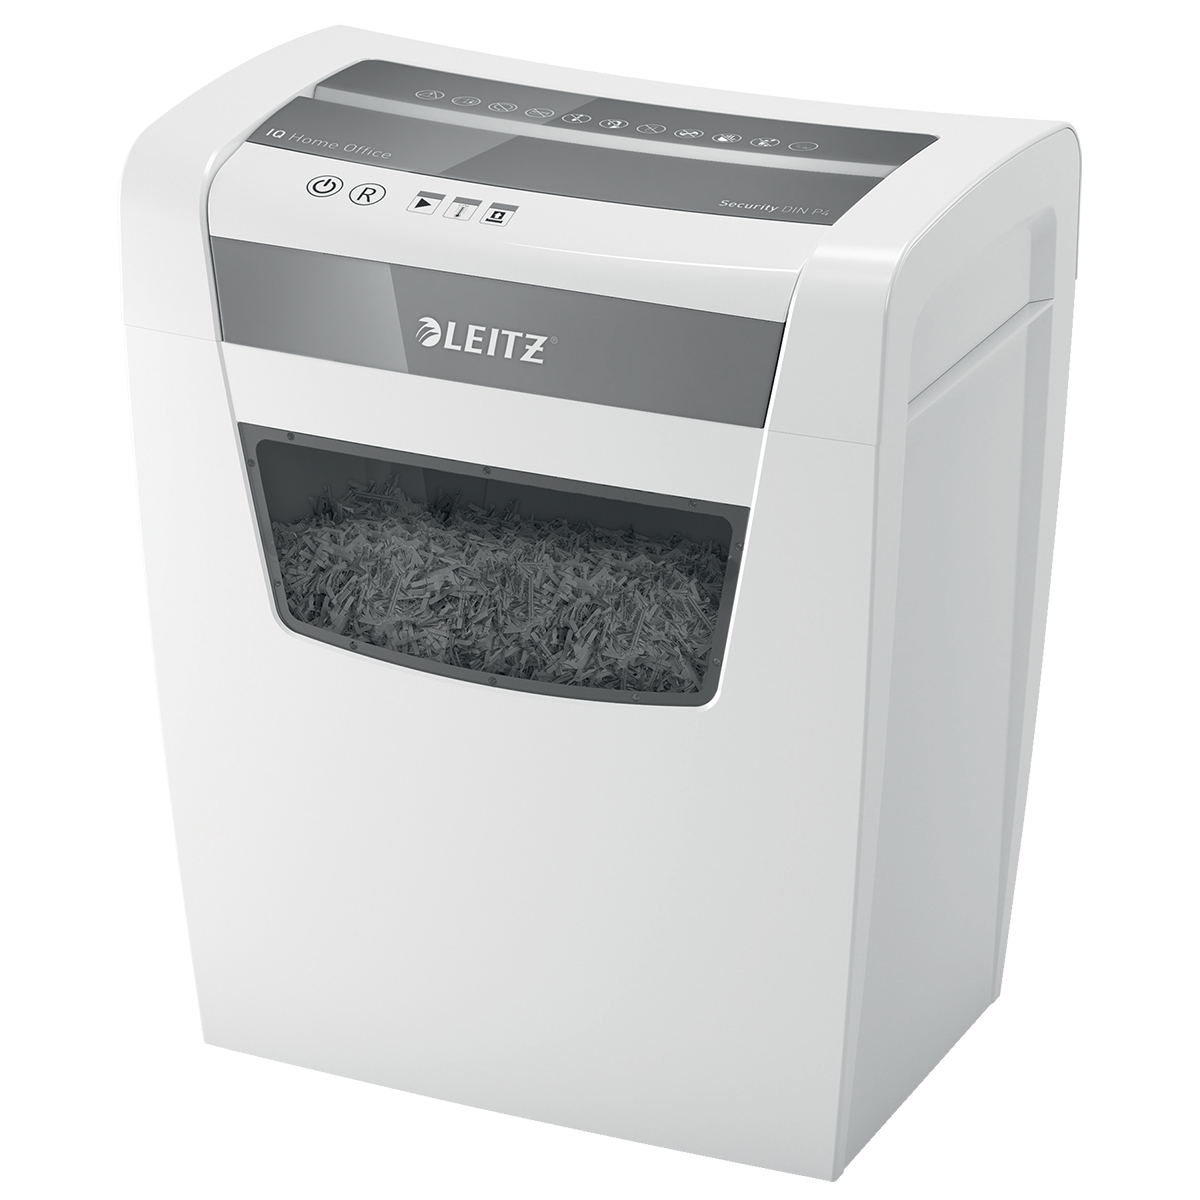 Leitz IQ Home Office Shredder